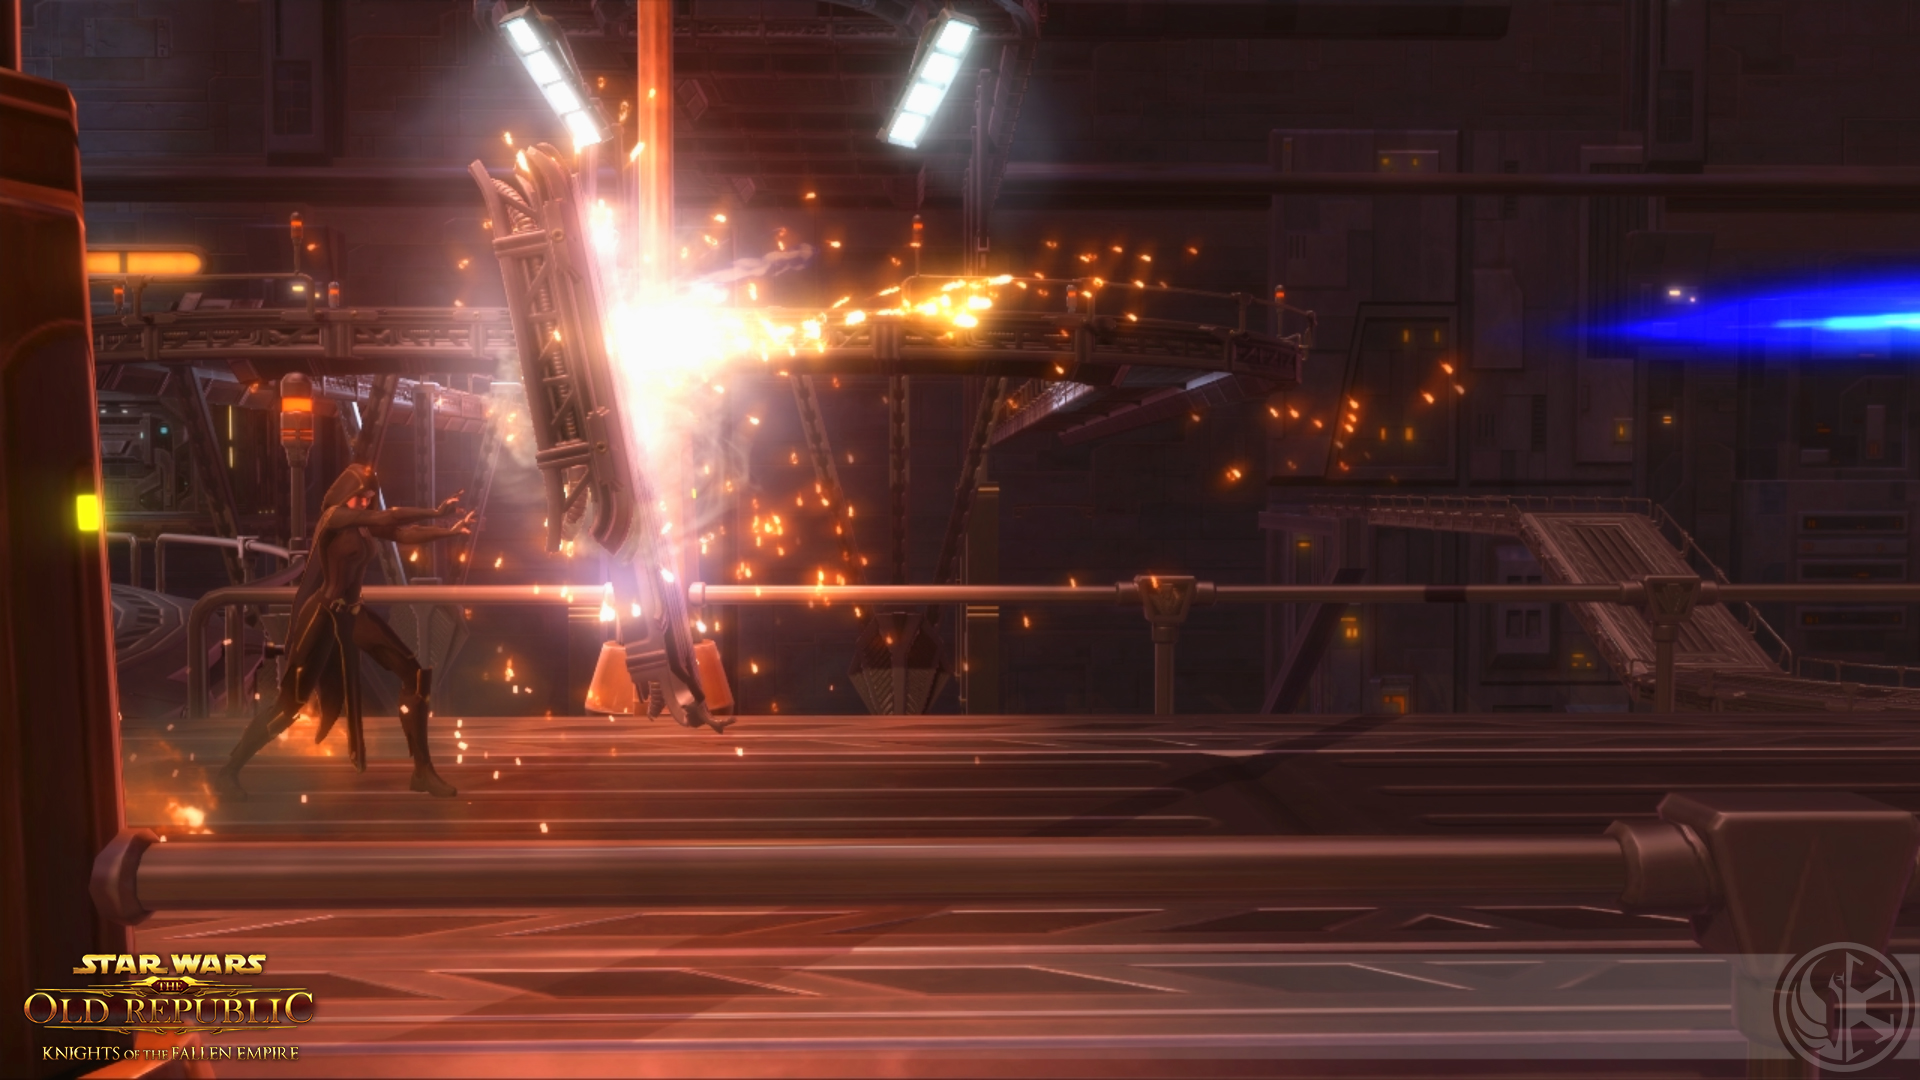 Star Wars: The Old Republic's next expansion arrives Oct. 27, is a new hope for MMOs